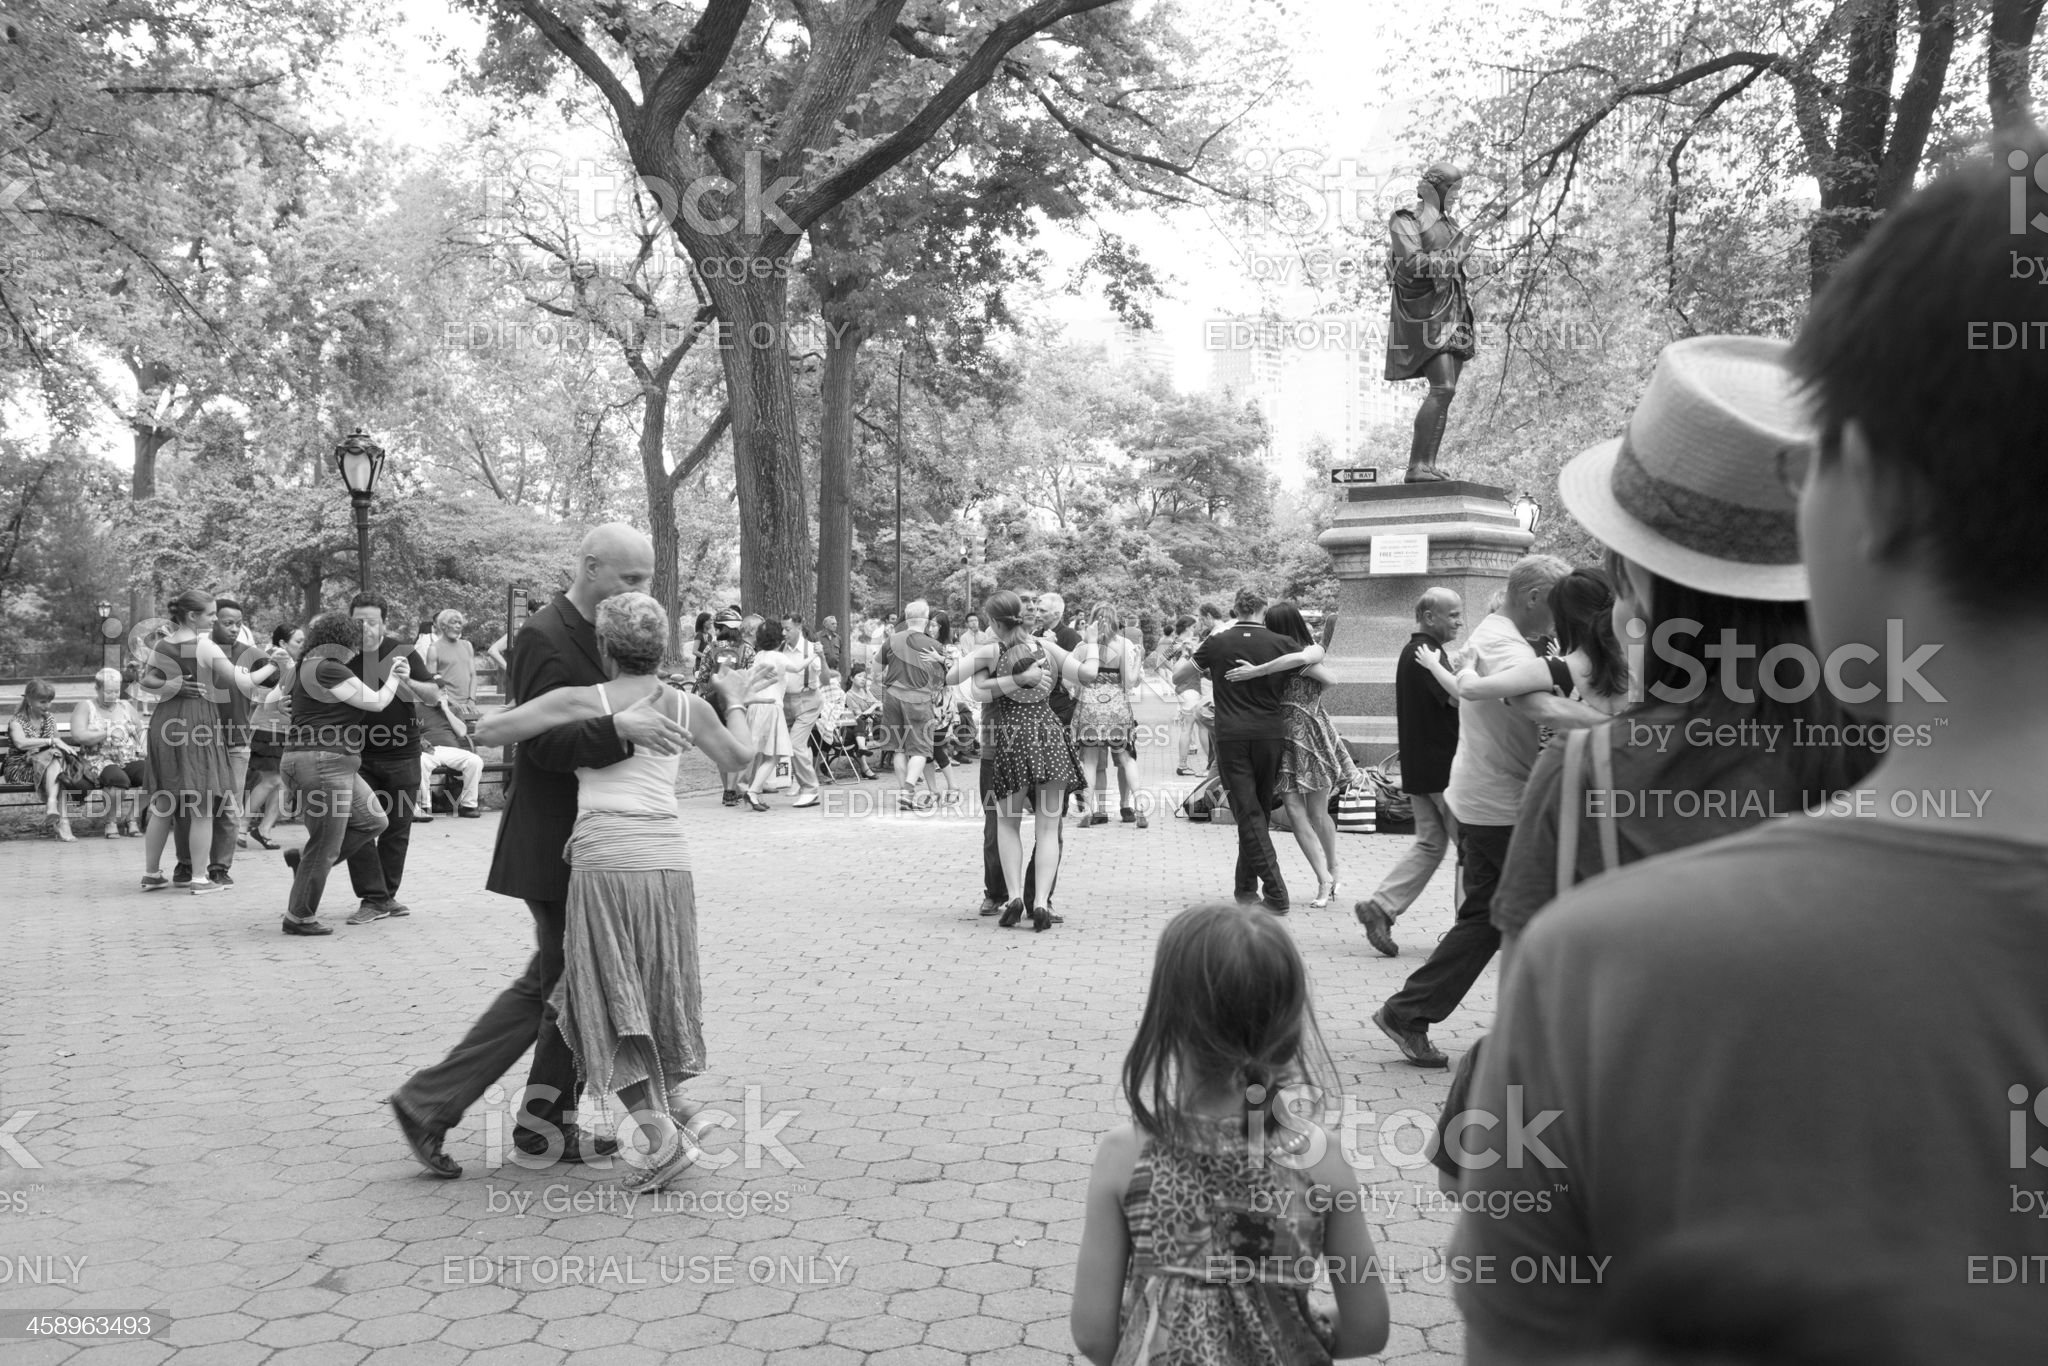 New York City People Dancing the Tango in Central Park royalty-free stock photo